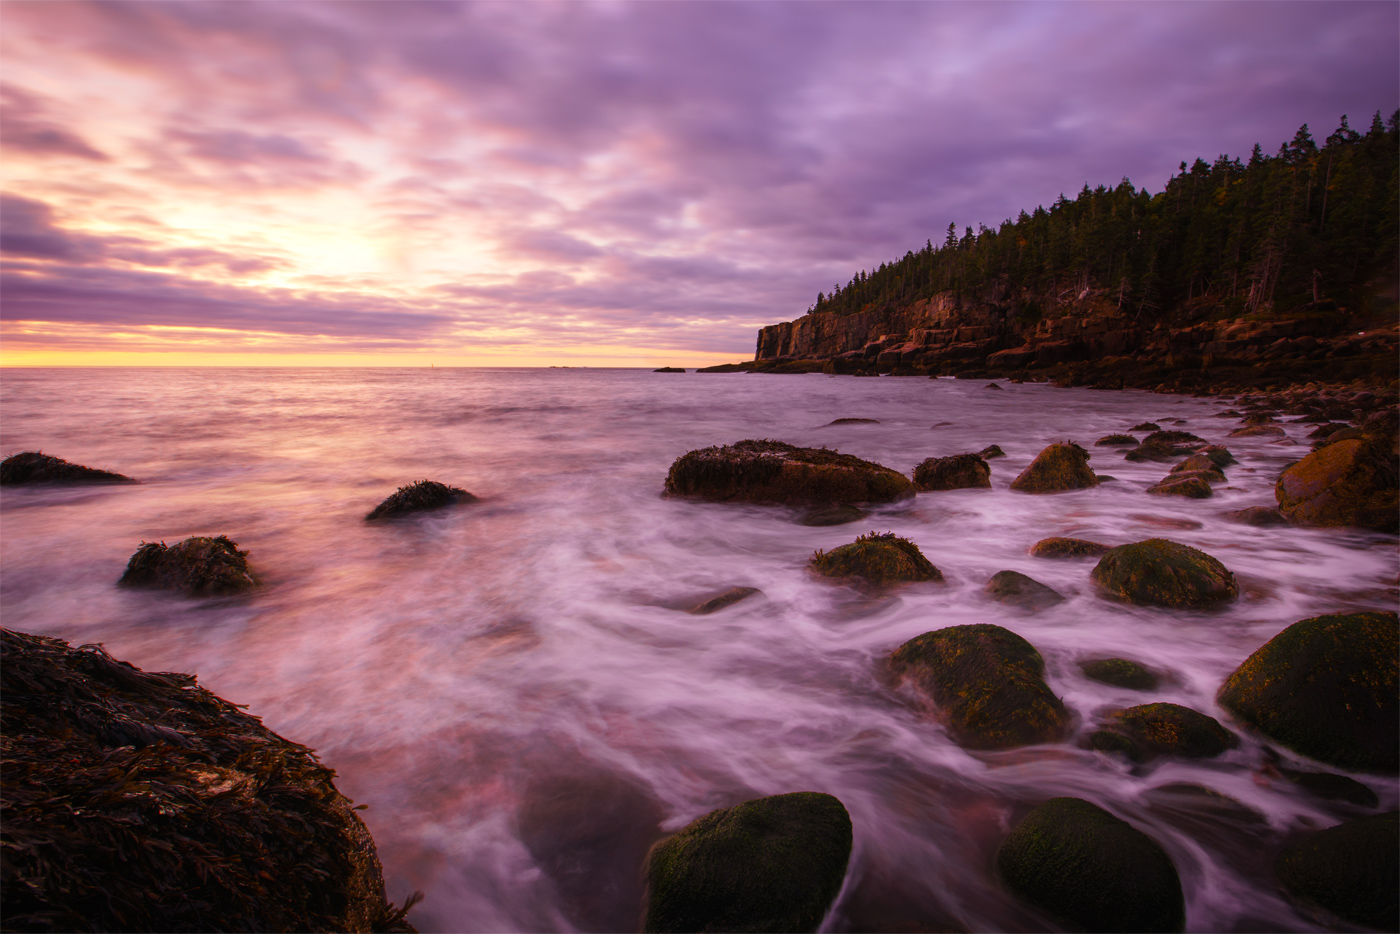 Maine is the Oregon of the East: Both have a Portland, plenty of microbrews, and the most rocky coastline for their respective sides of the country. Acadia is Maine at it's best, a part of New England that looks like no other.